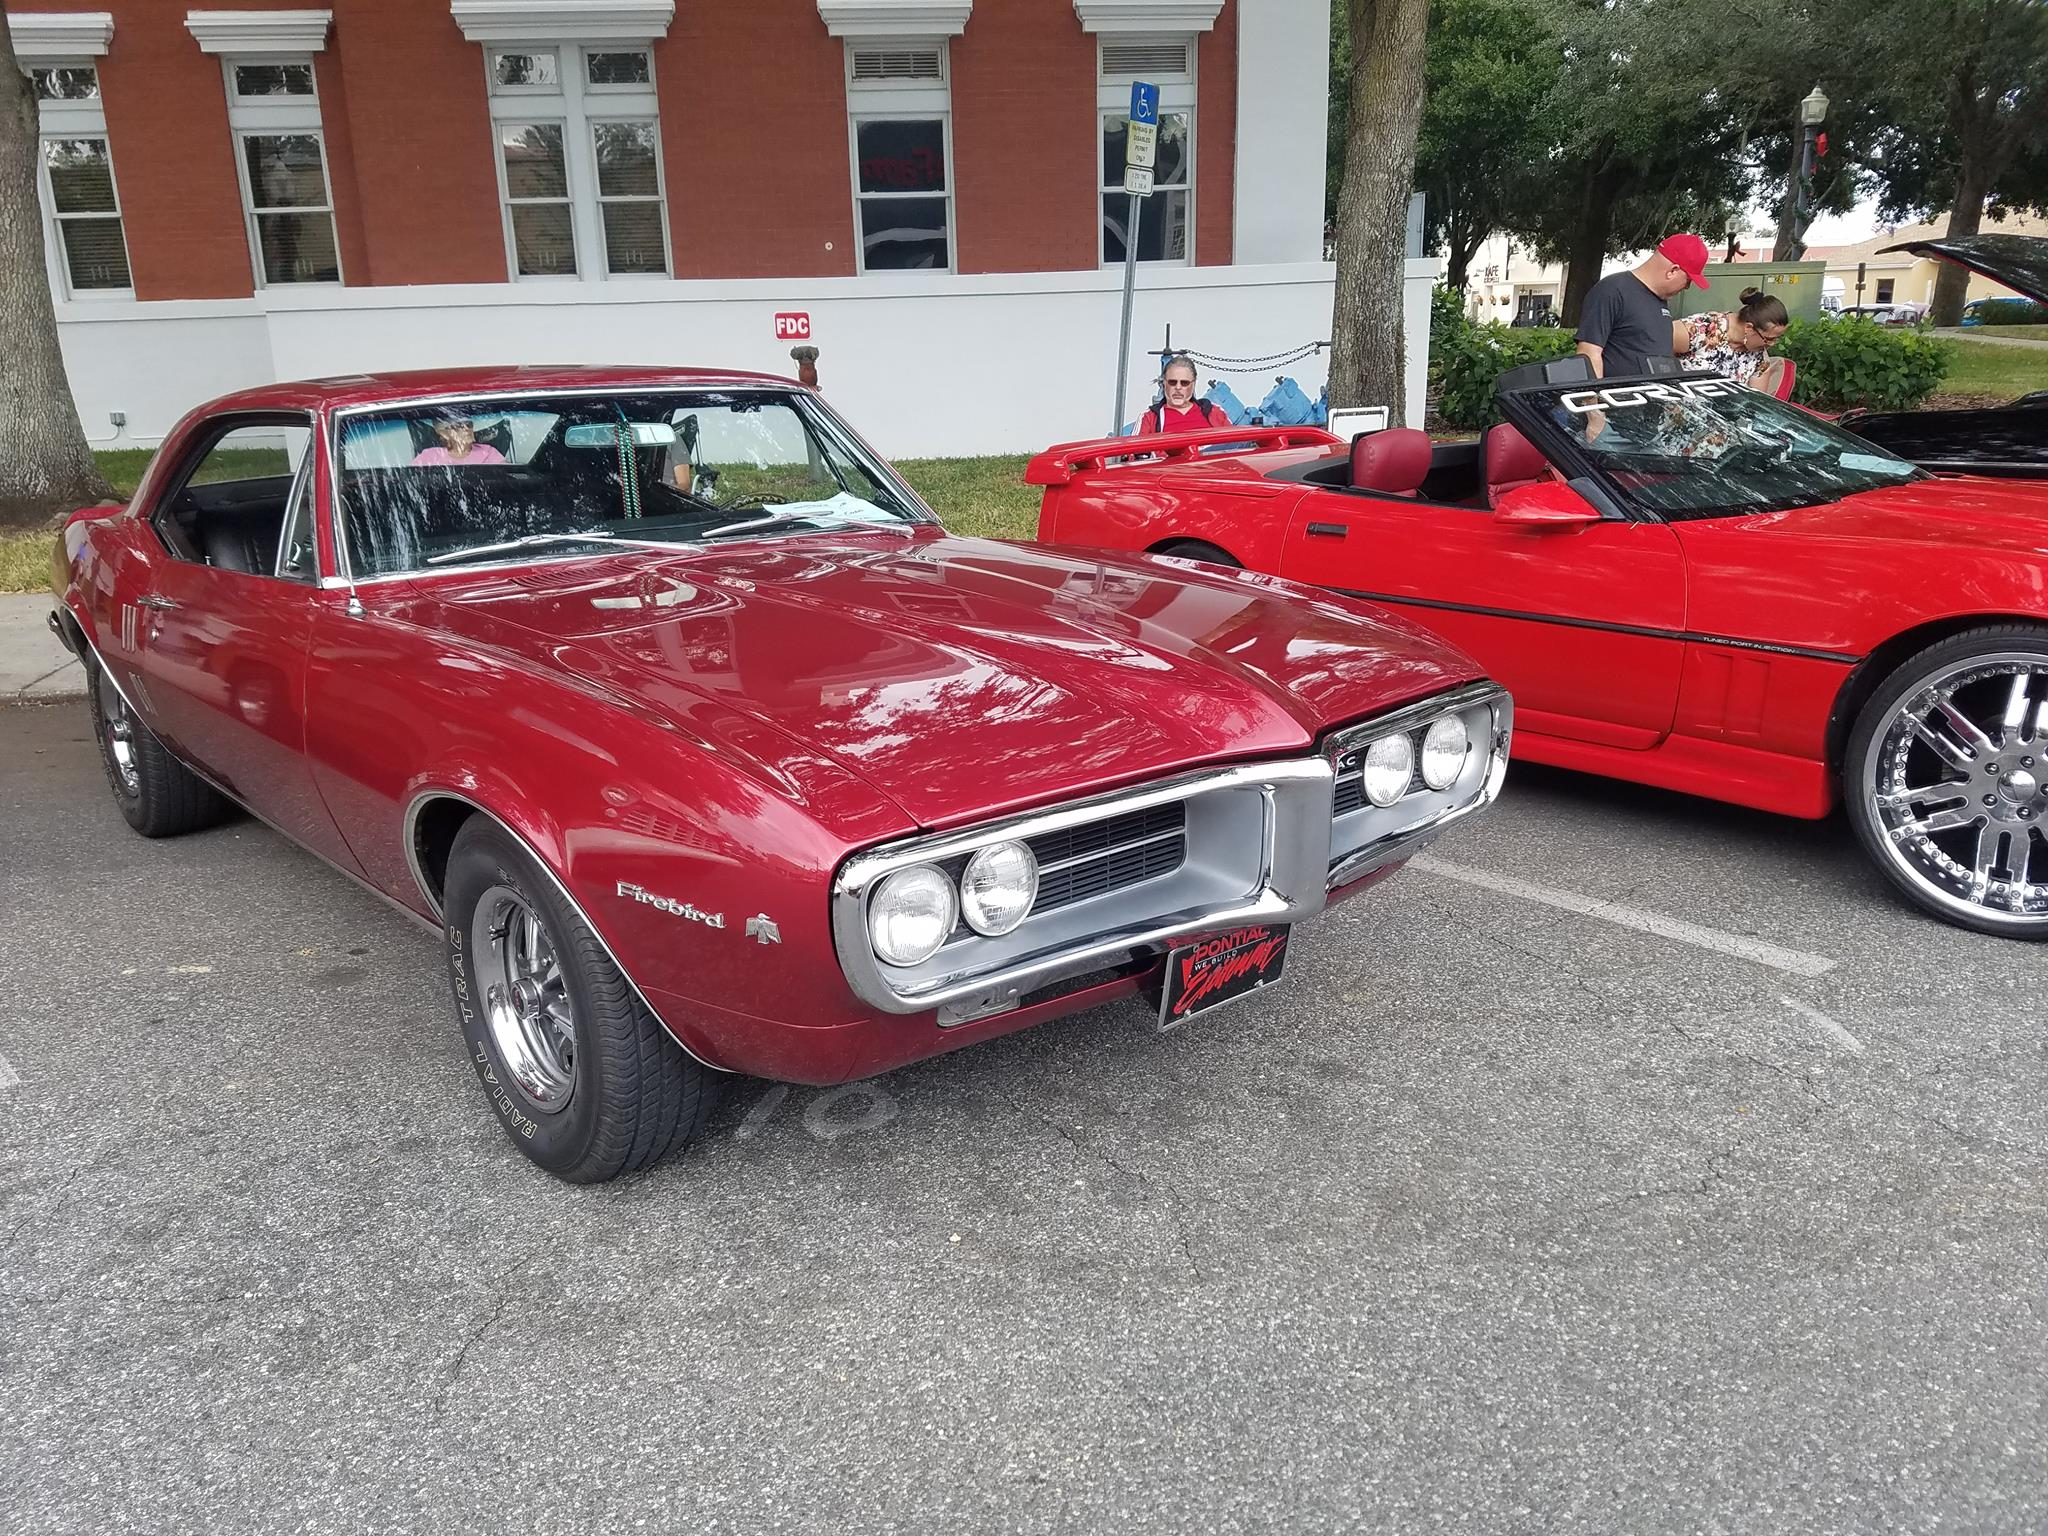 DADE CITY CRUISE-IN